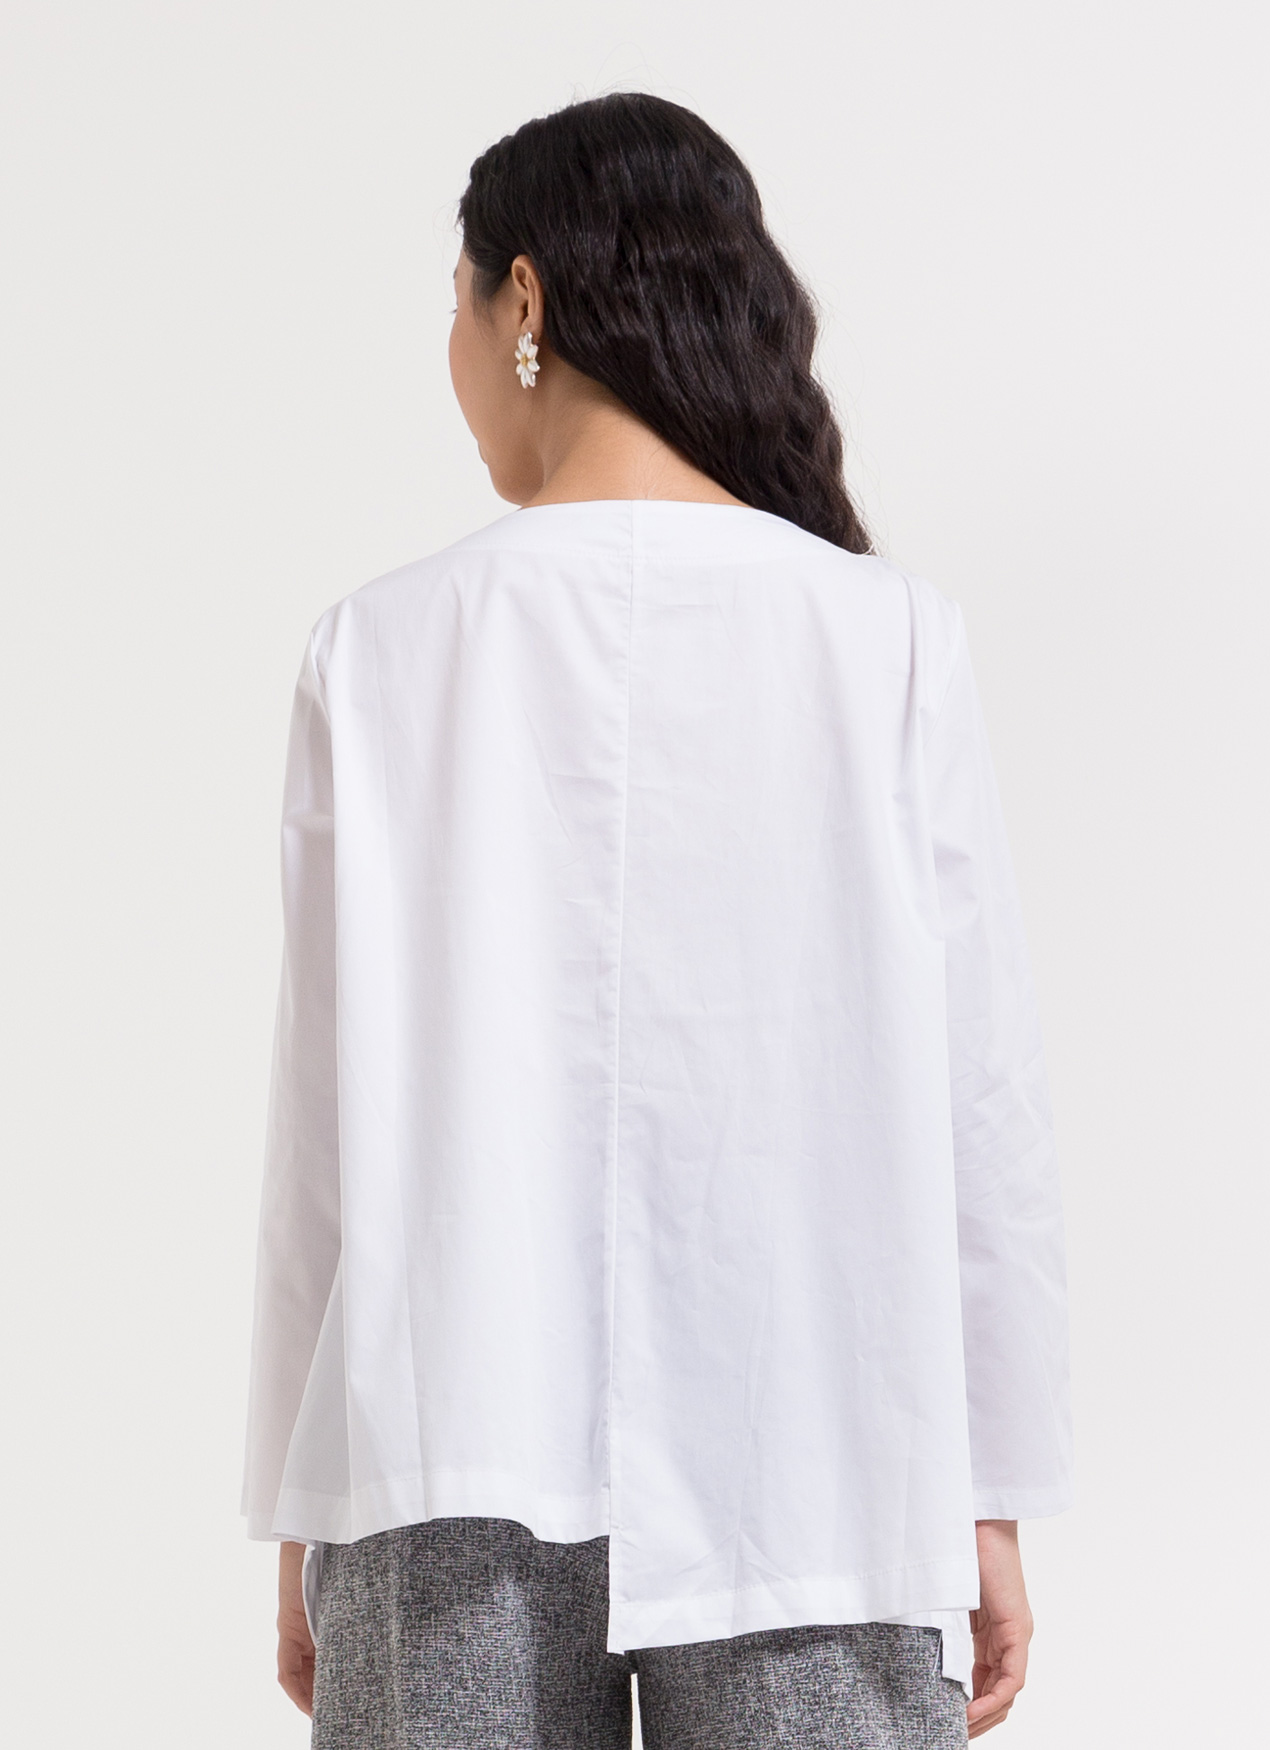 BOWN Candace Top - White